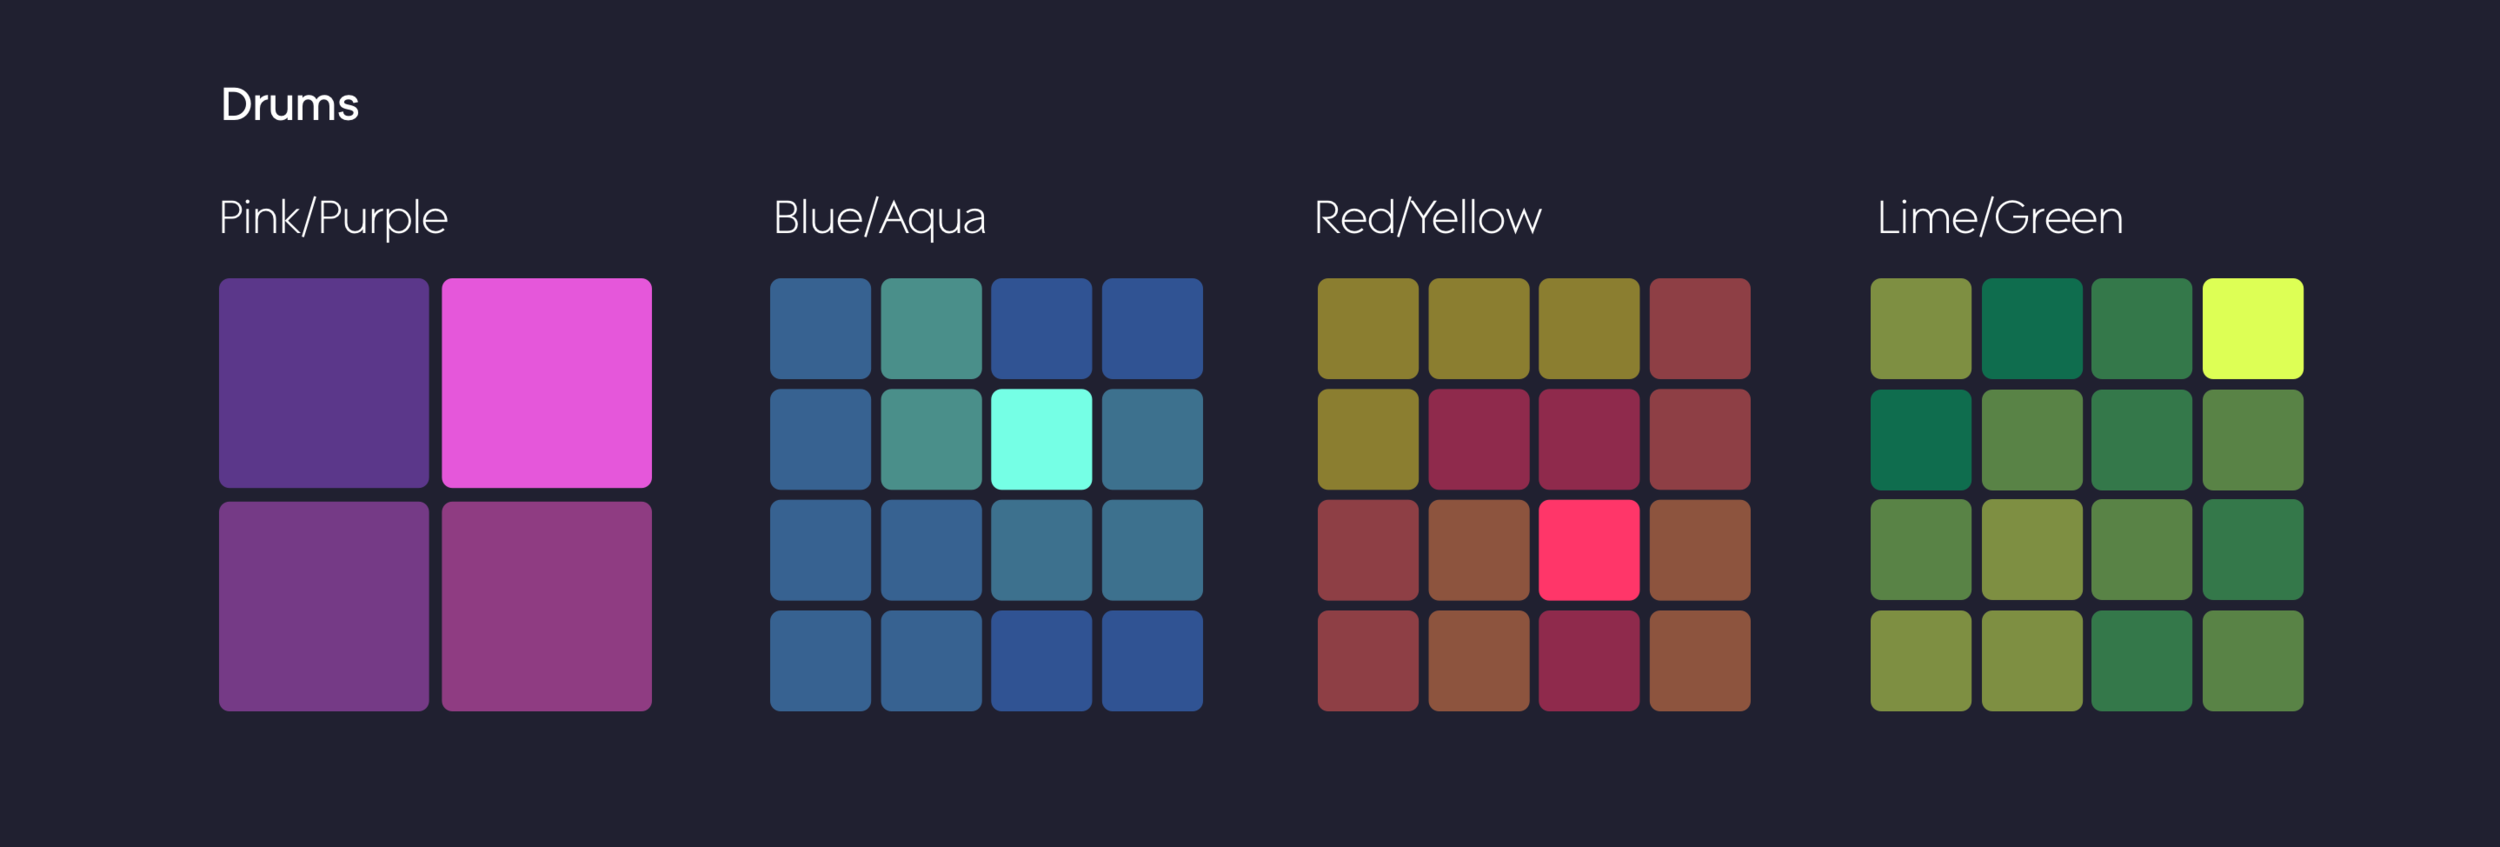 Create_Drums-colour-groups.png